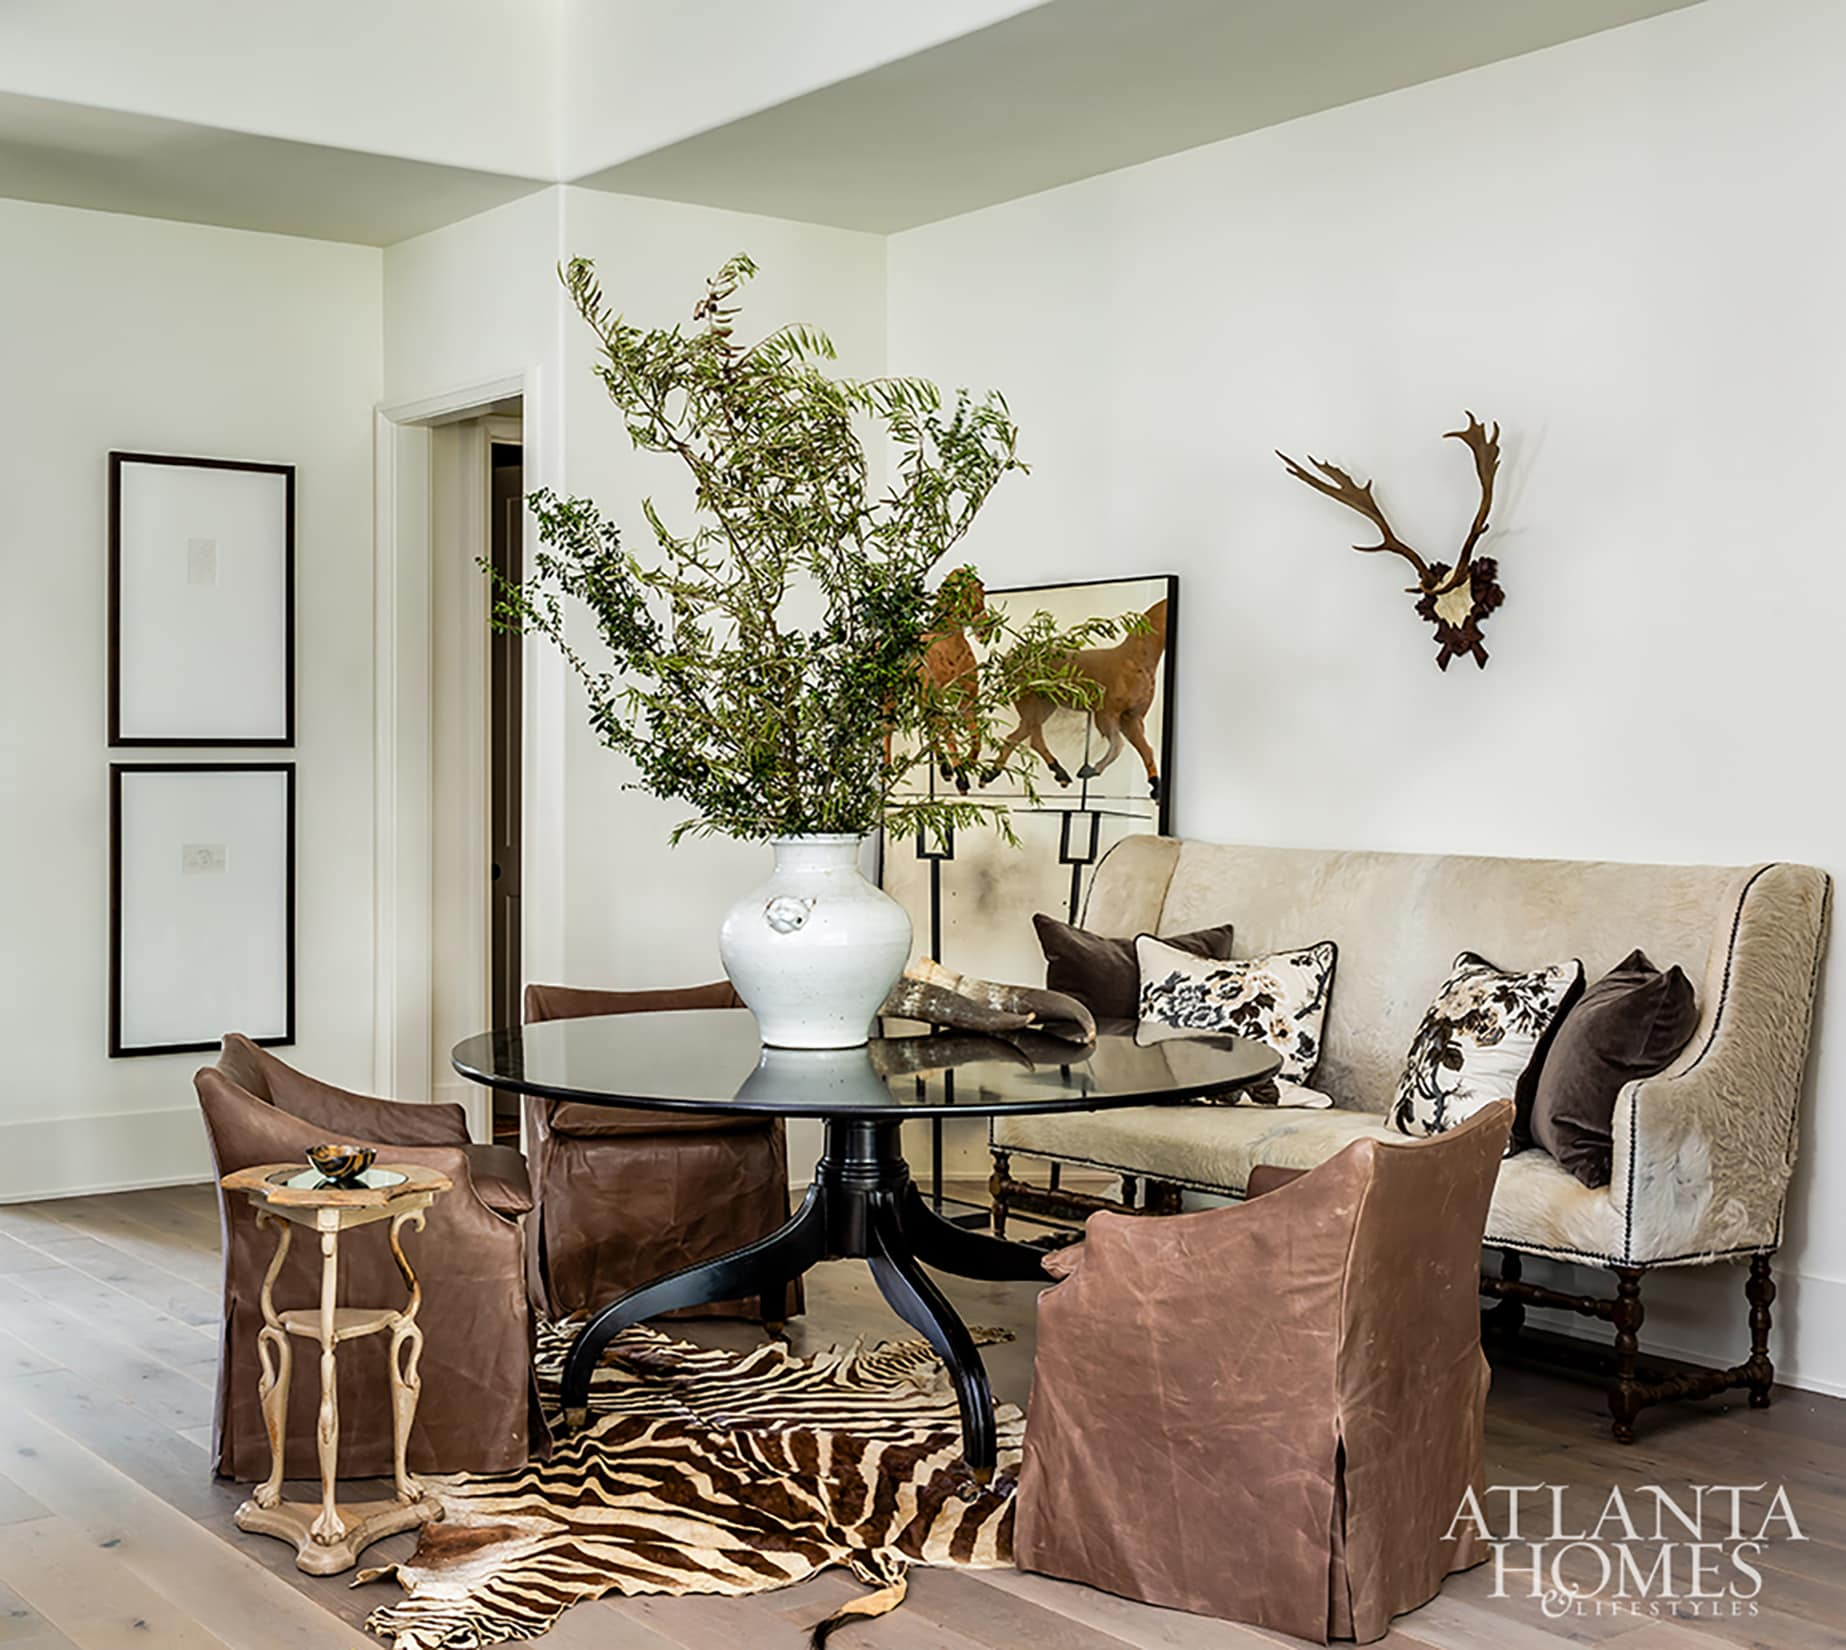 AHL.2020.Serenbe.Showhouse Lorraine Enright Design on Cindy Hattersley's blog